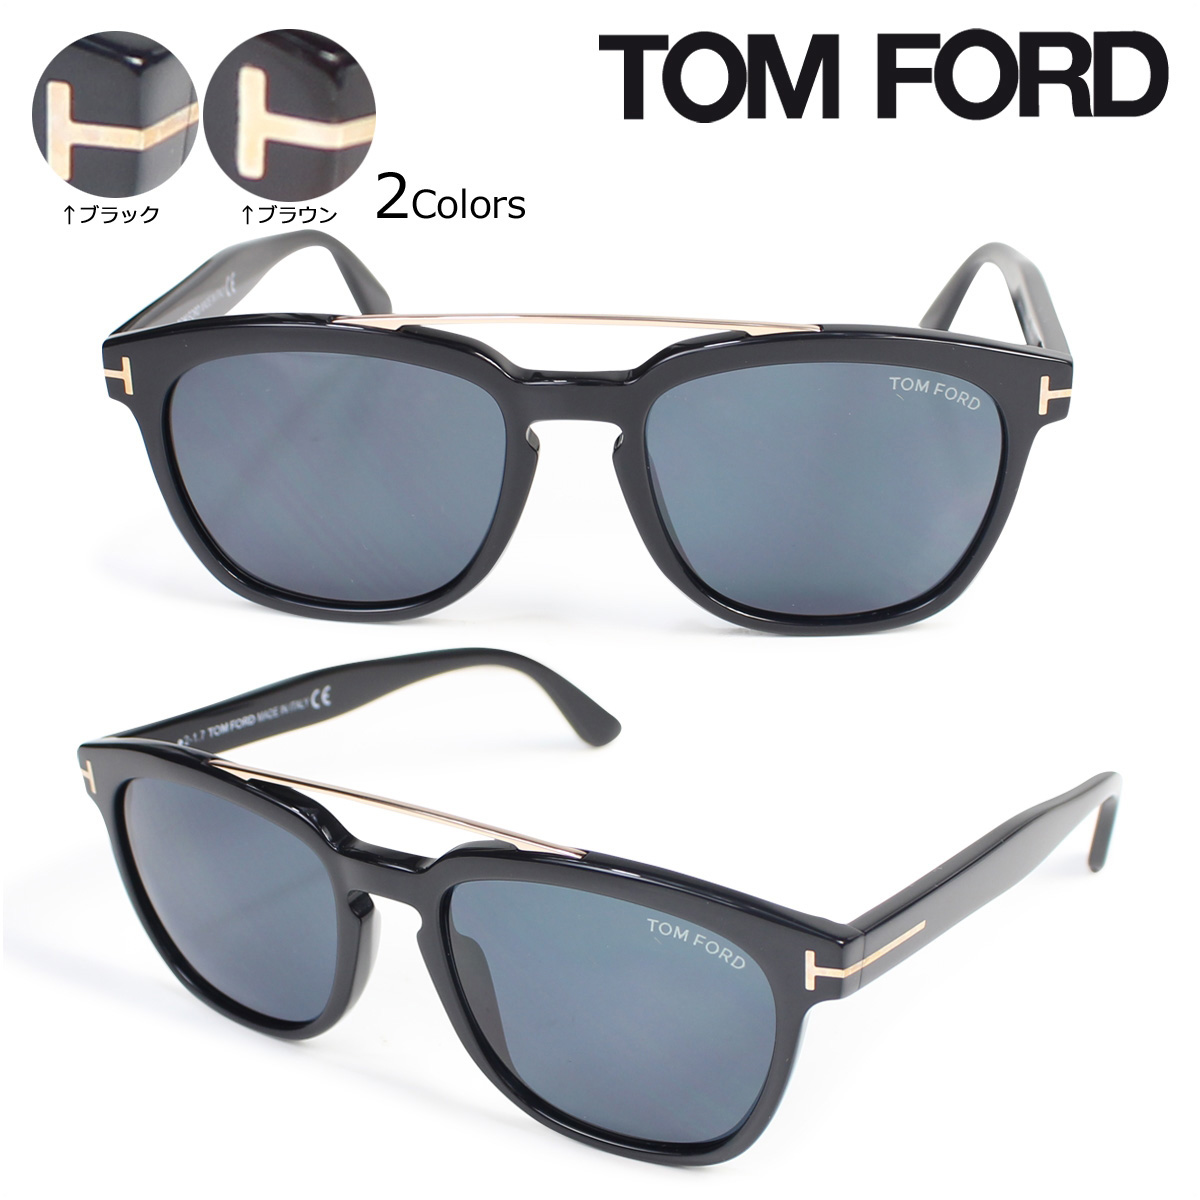 04a043d2a479 Whats up Sports  Tom Ford TOM FORD sunglasses glasses men gap Dis ...